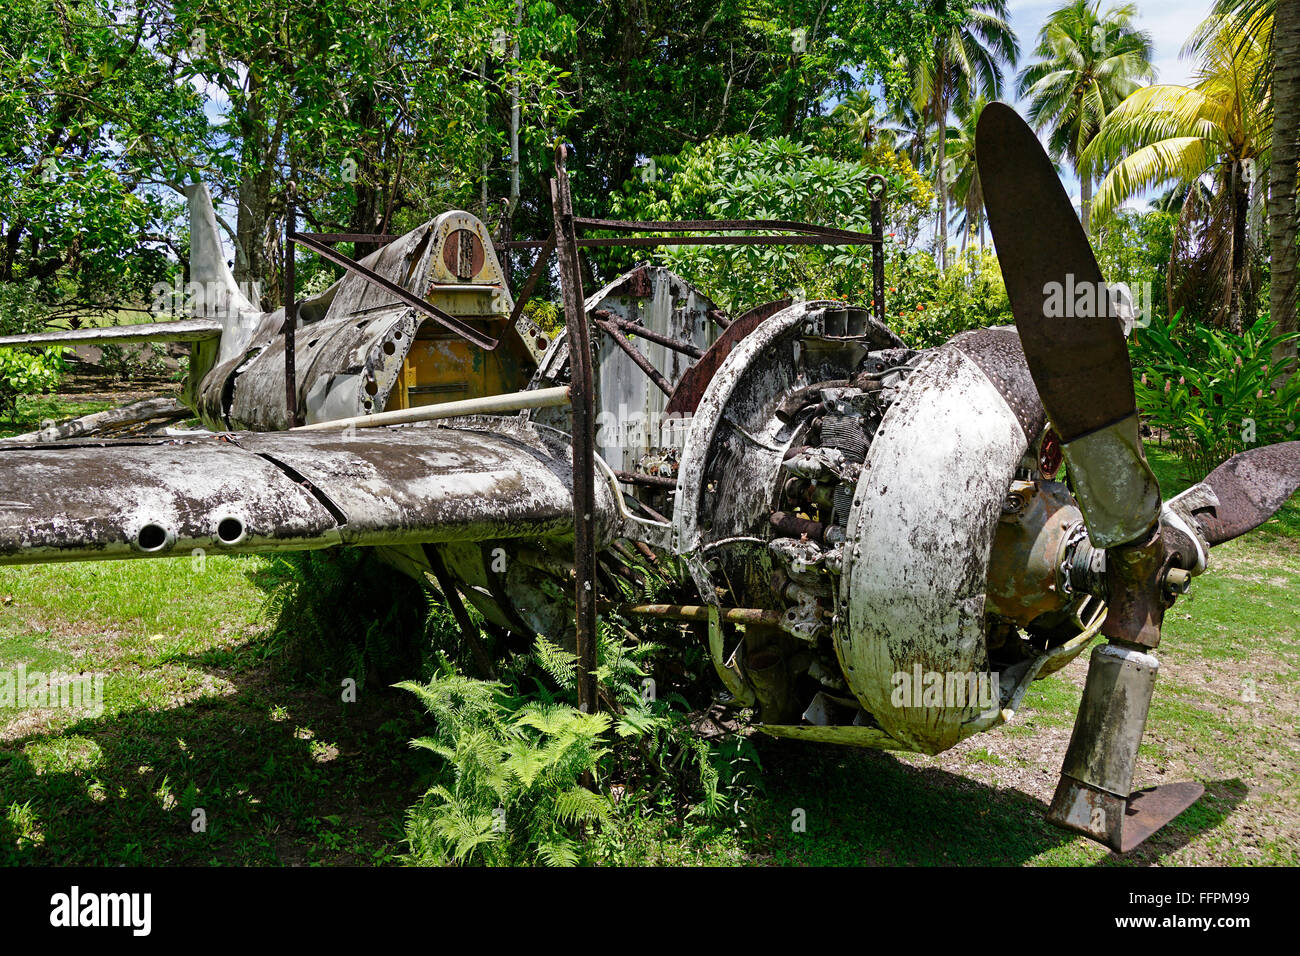 Wreckage of American Grumman Wildcat fighter plane in outdoor Vilu War Museum, Guadalcanal, Solomon Islands. - Stock Image